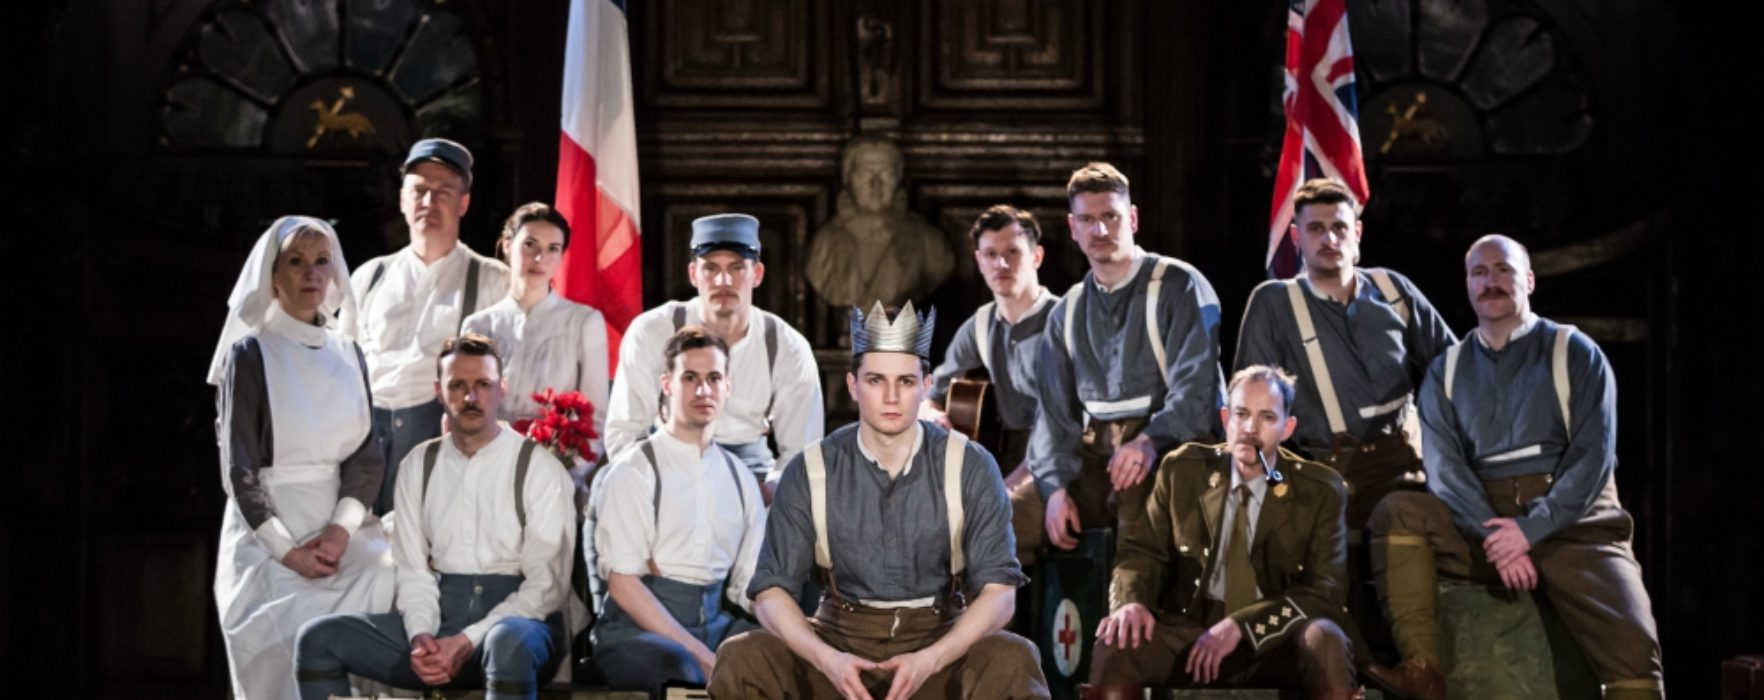 PREVIEW: Antic Disposition's Henry V steps back in time at Manchester Cathedral for its fourth year